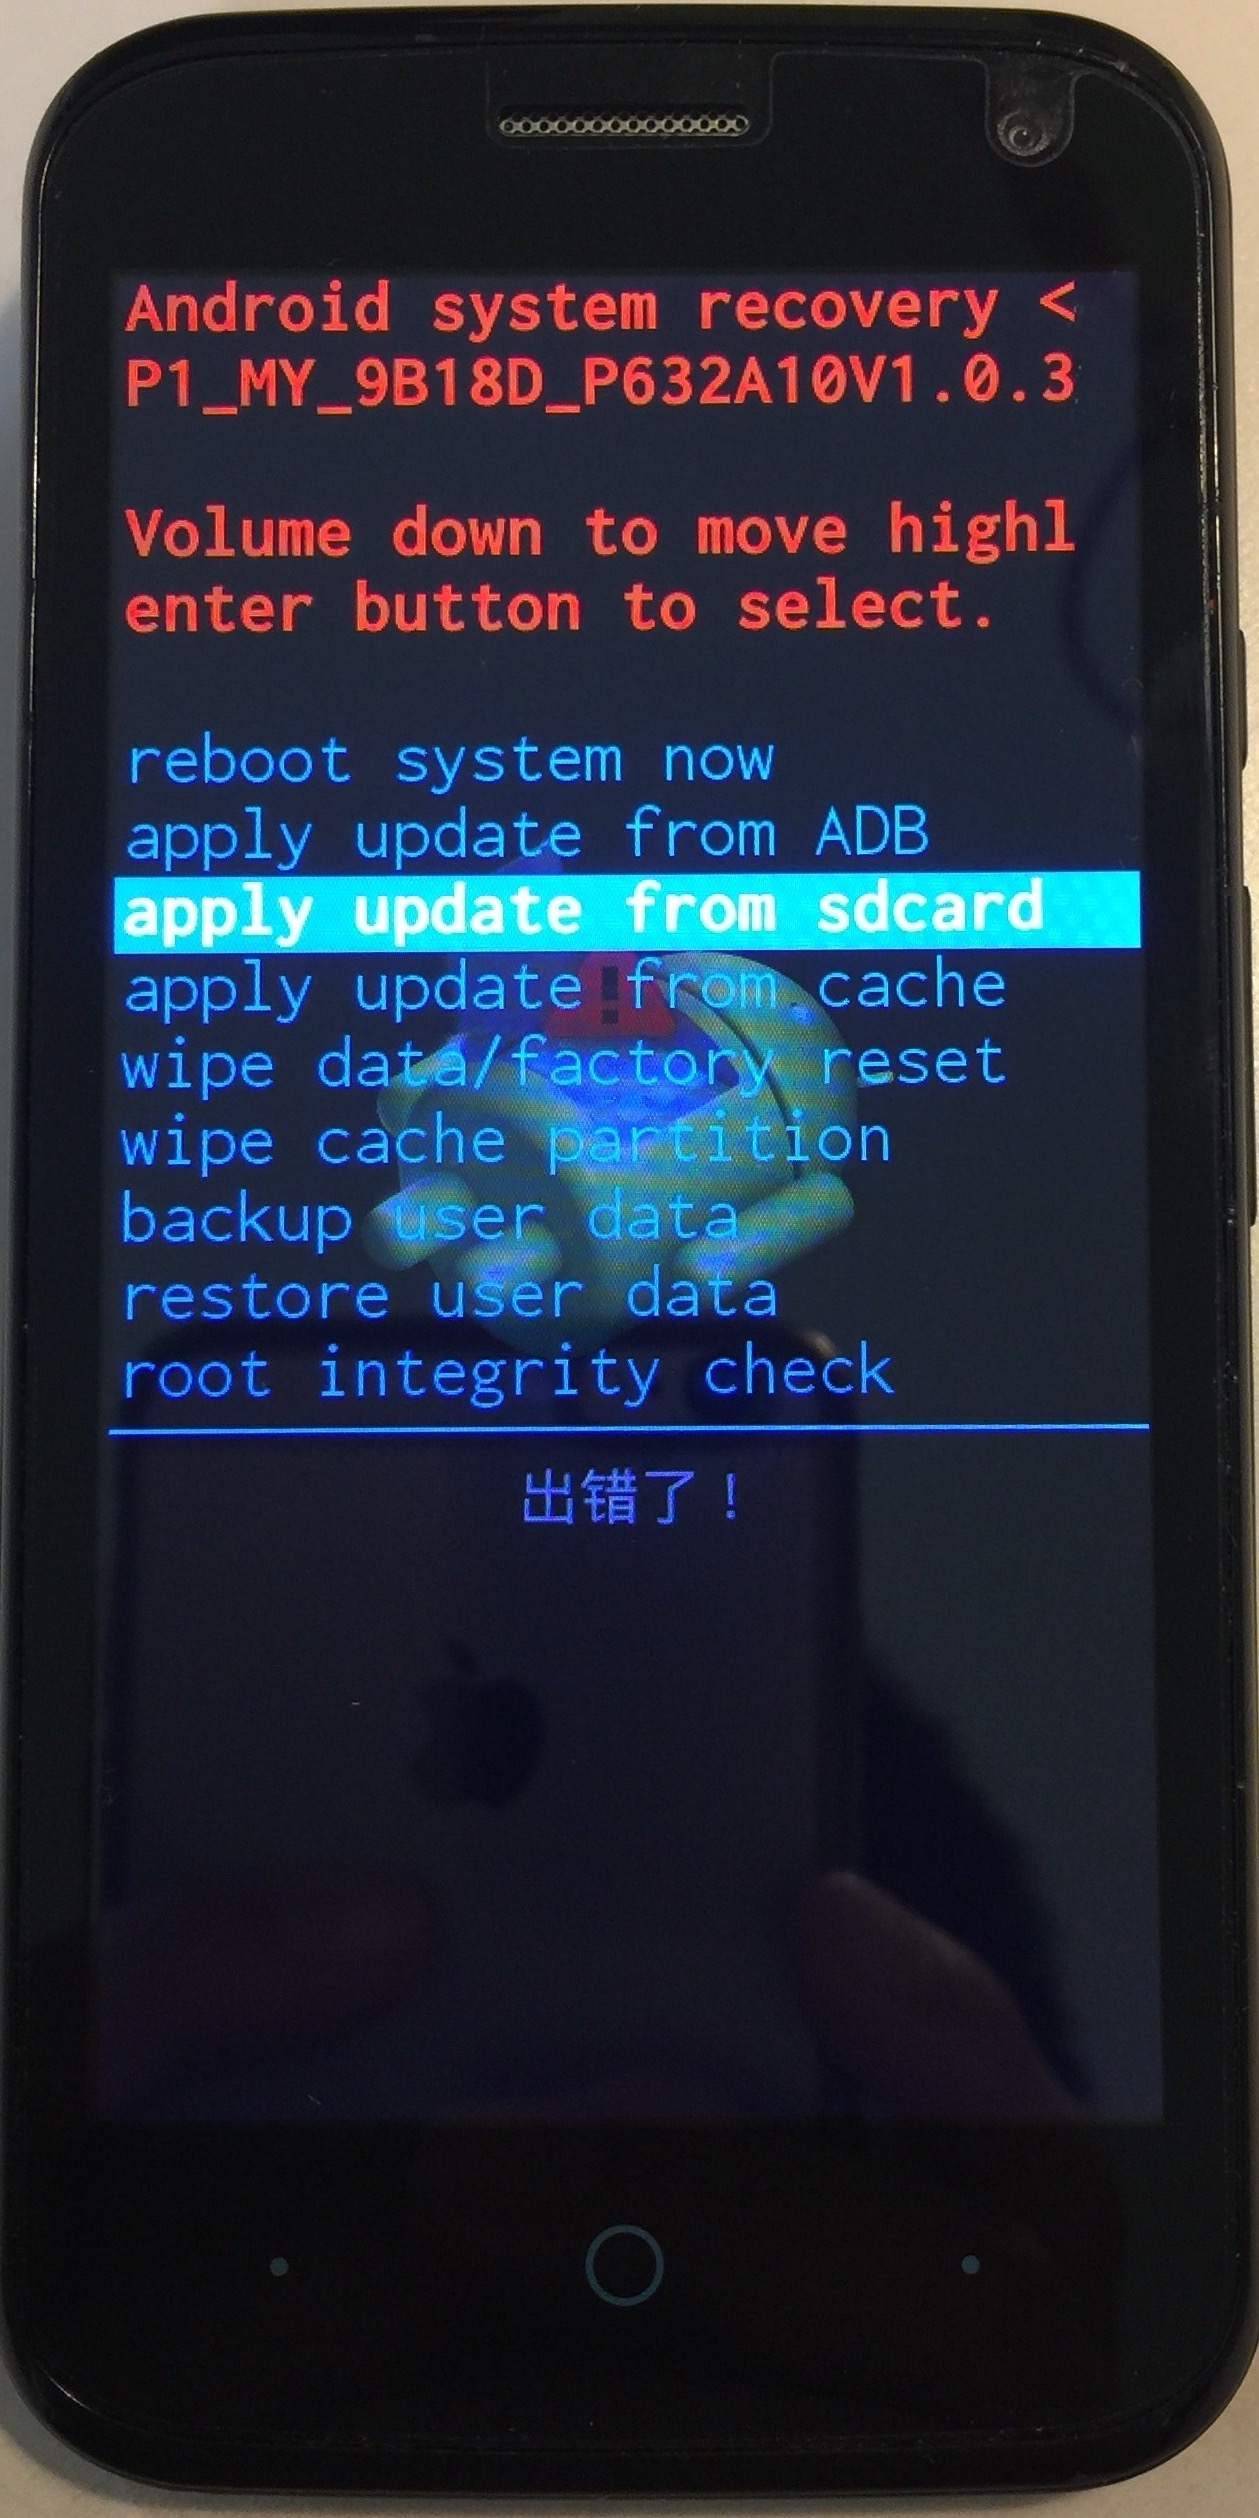 Android system recovery 3e apply update from sd card